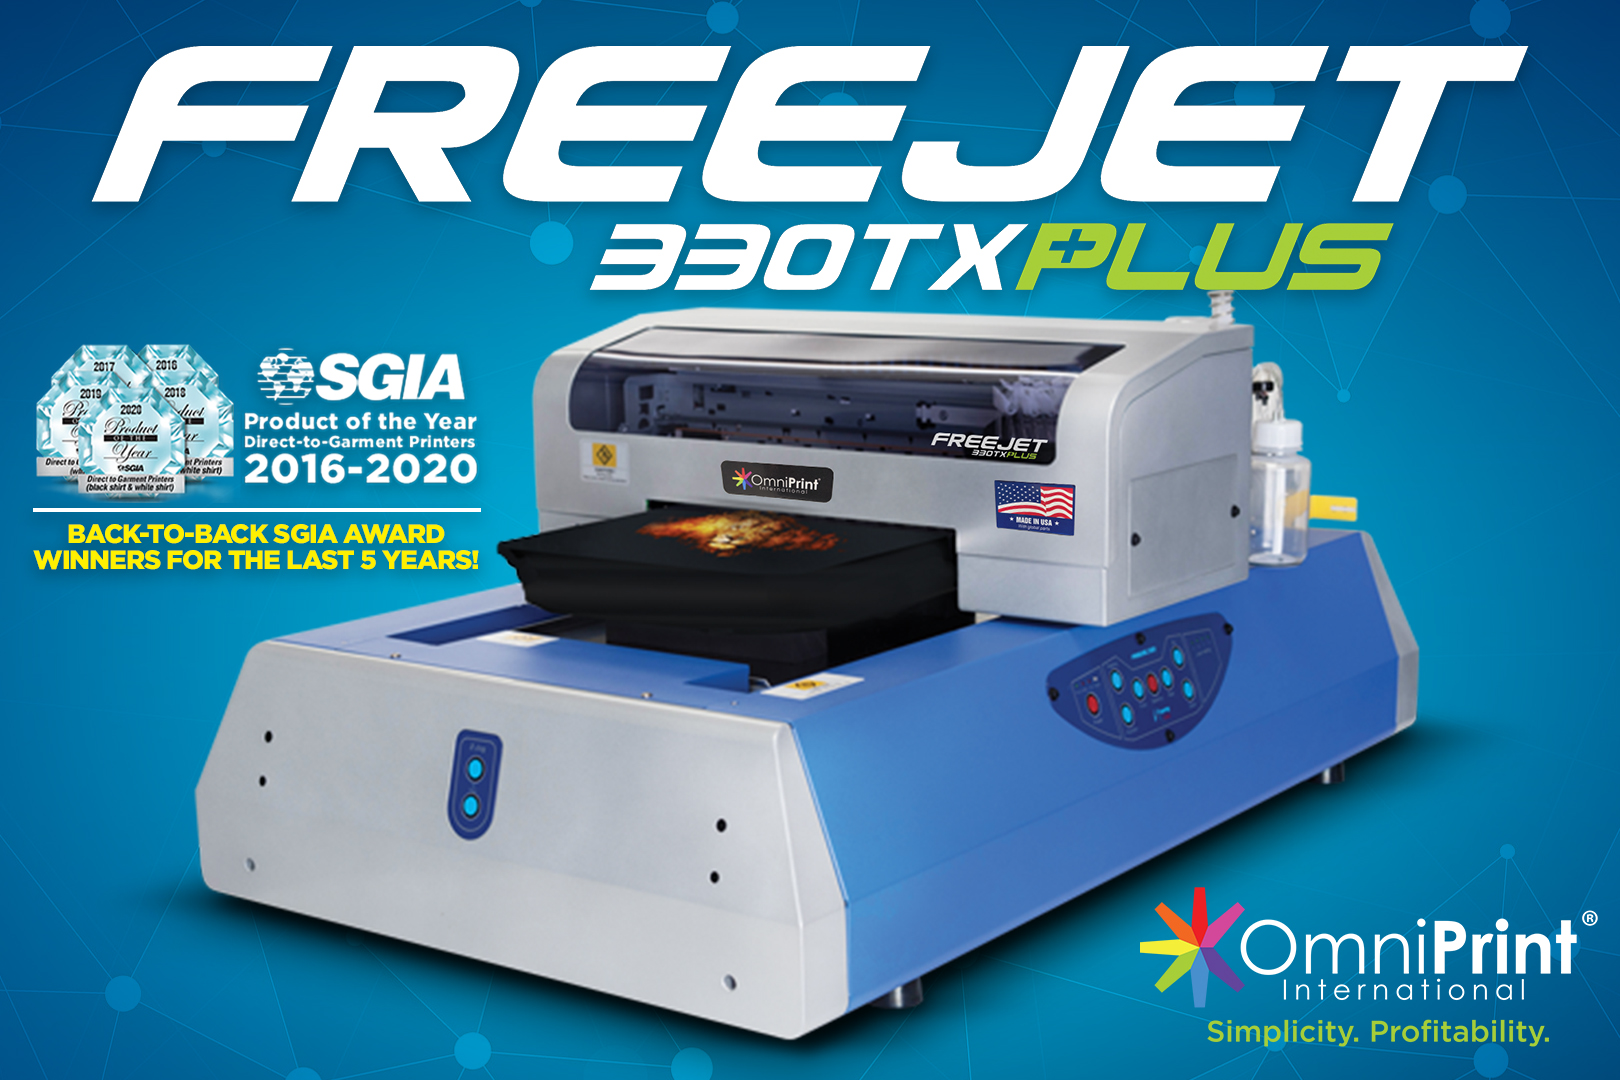 FreeJet 330TX Plus - Product of the Year 2020, OmniPrint International